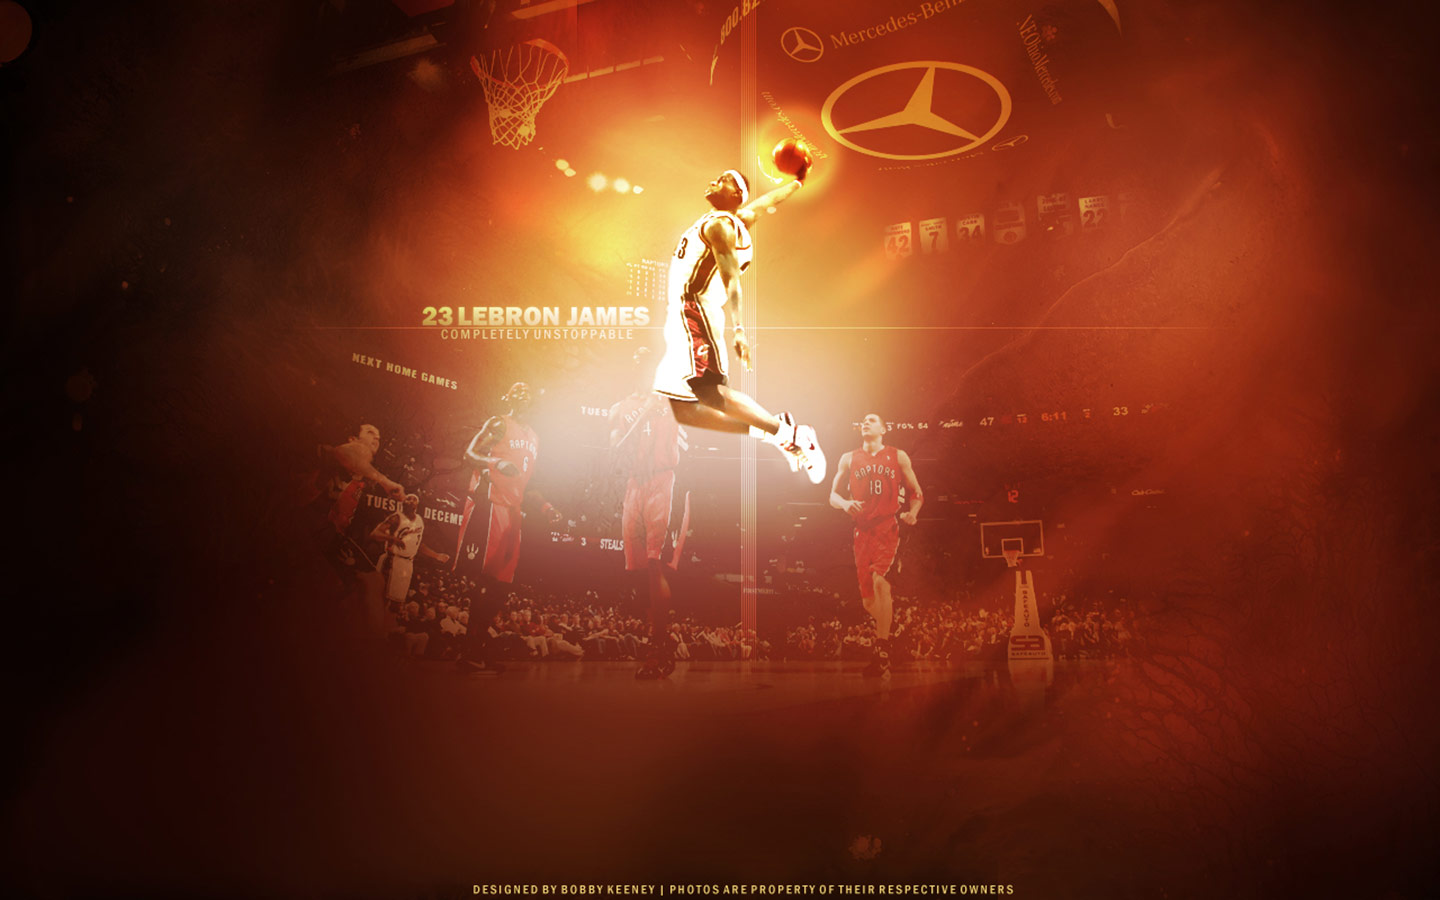 Cute Nike Wallpapers Lebron James Wallpapers 1080p Wallpapers Lebron James